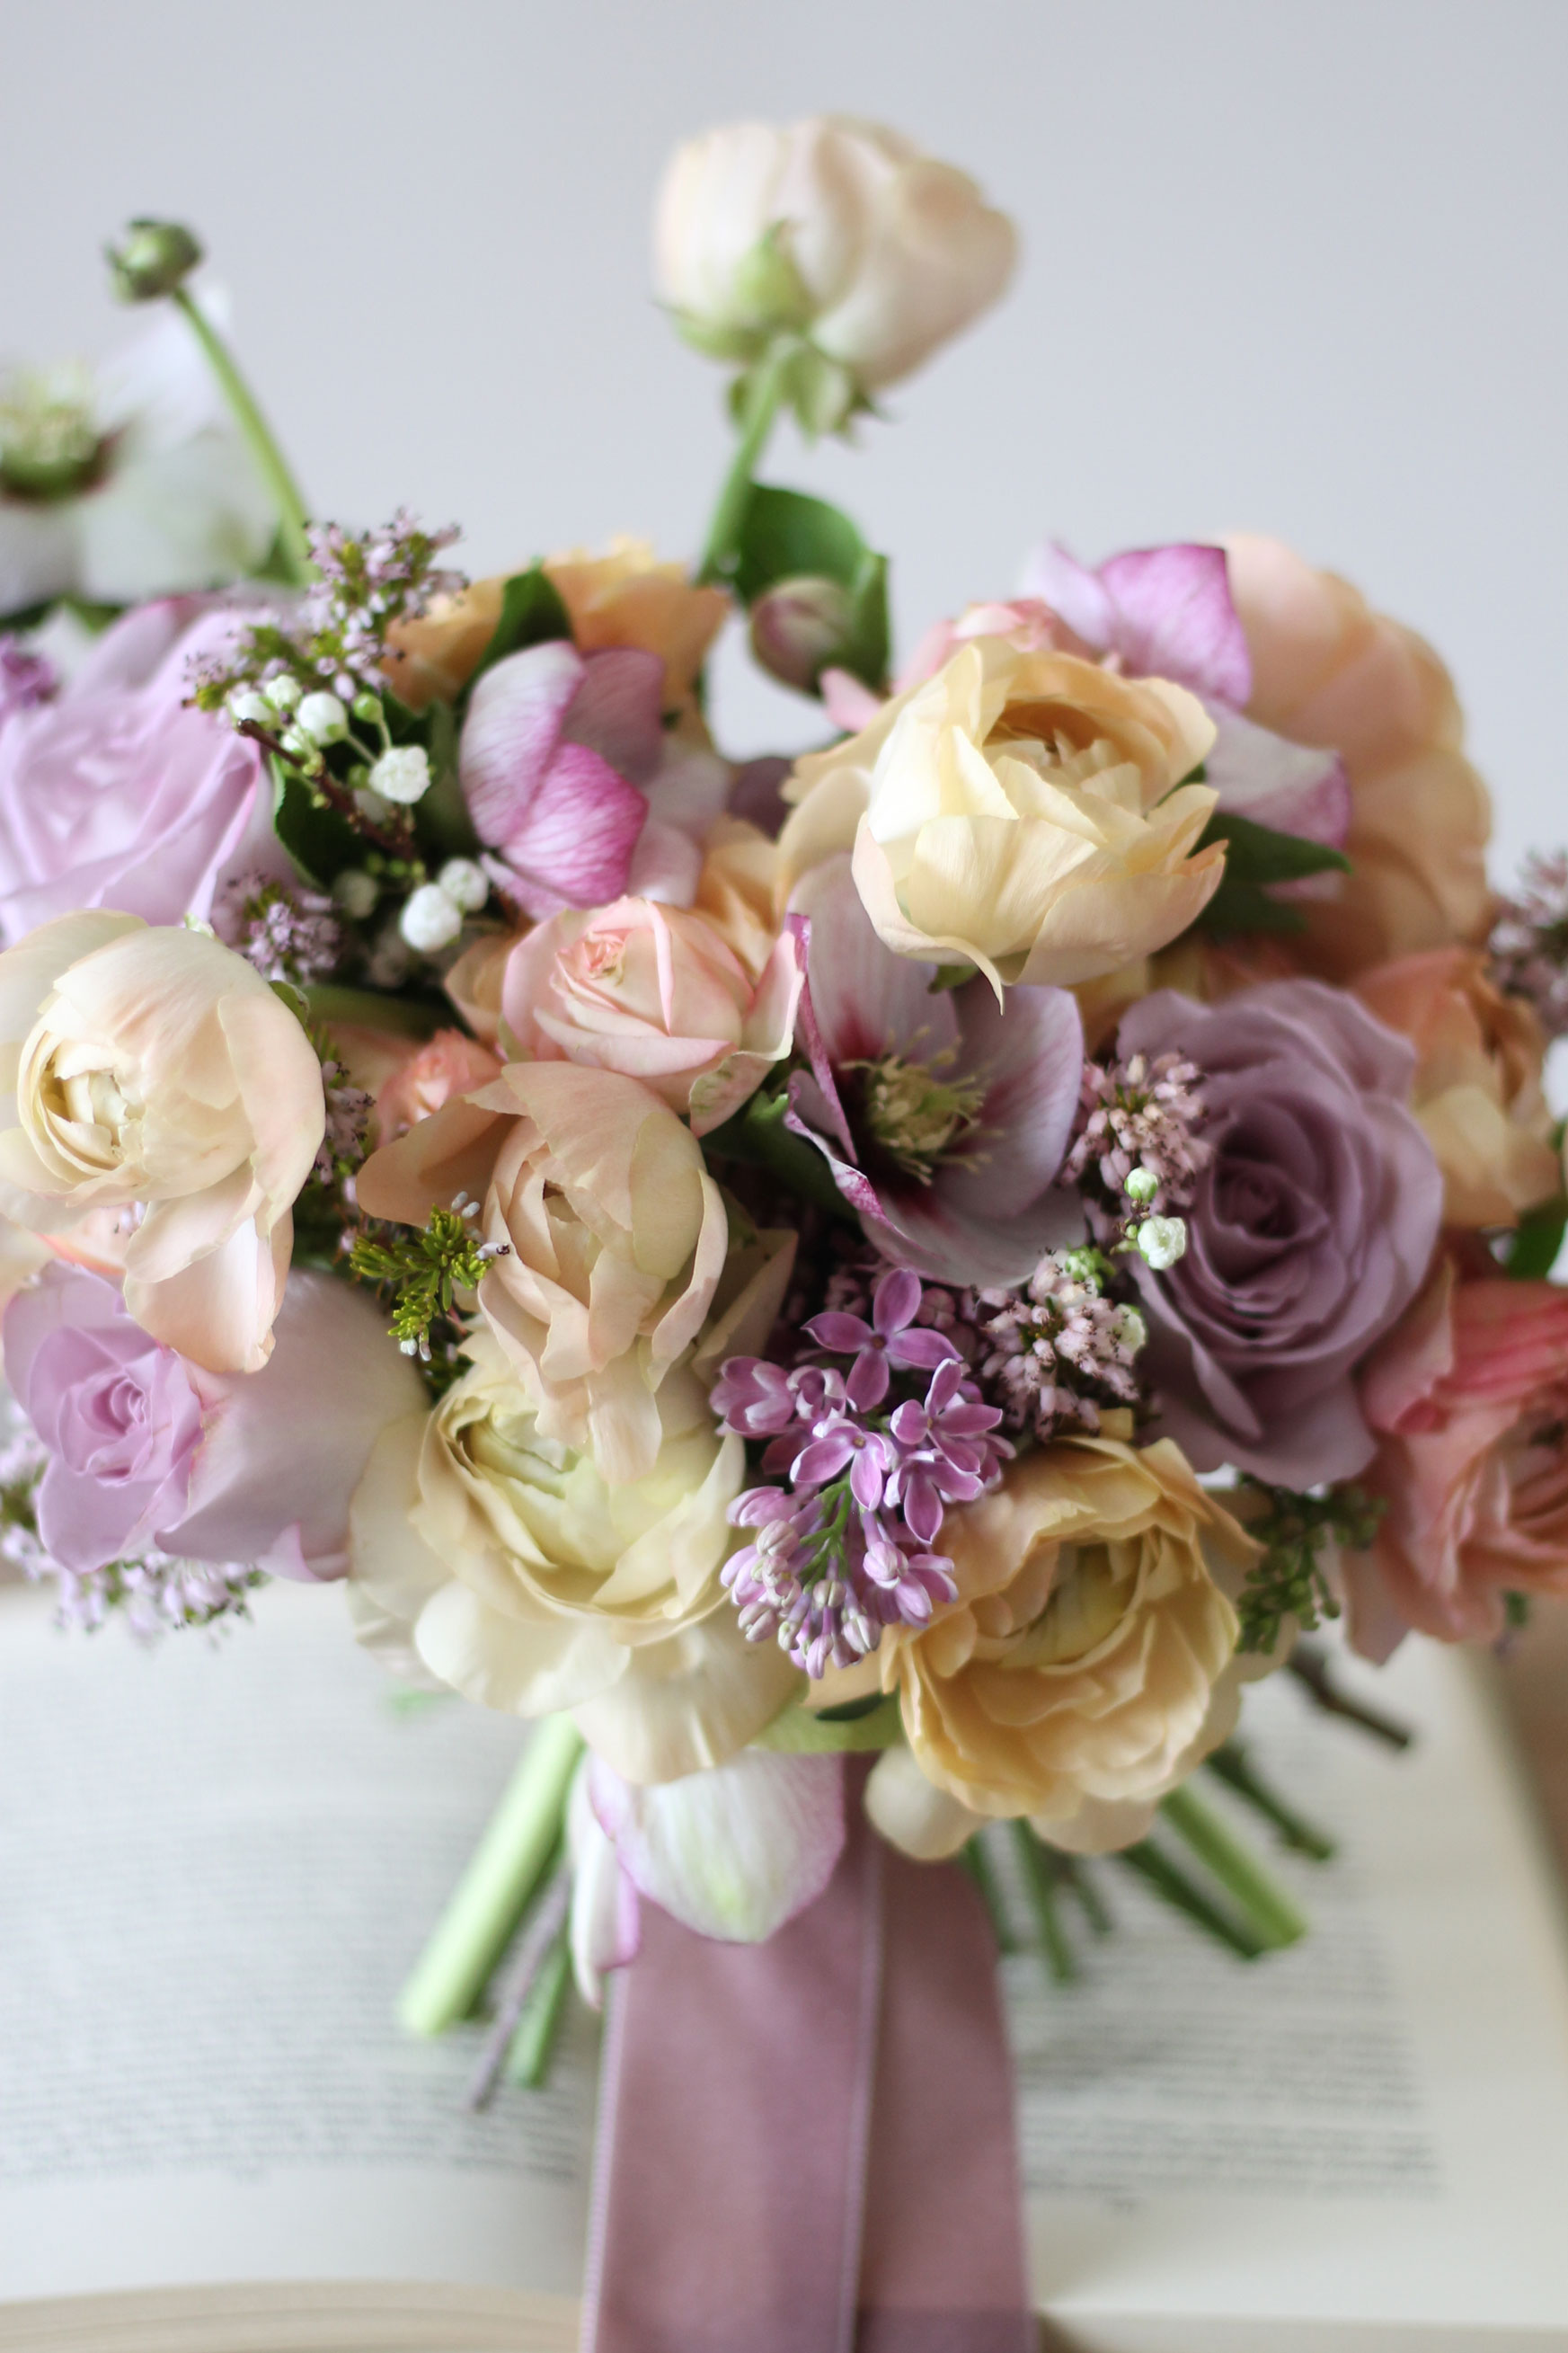 sarah-harper-floral-design-luxury-wedding-florist-flowers-oxfordshite-cotsworlds-gallery-IMG_8803-2